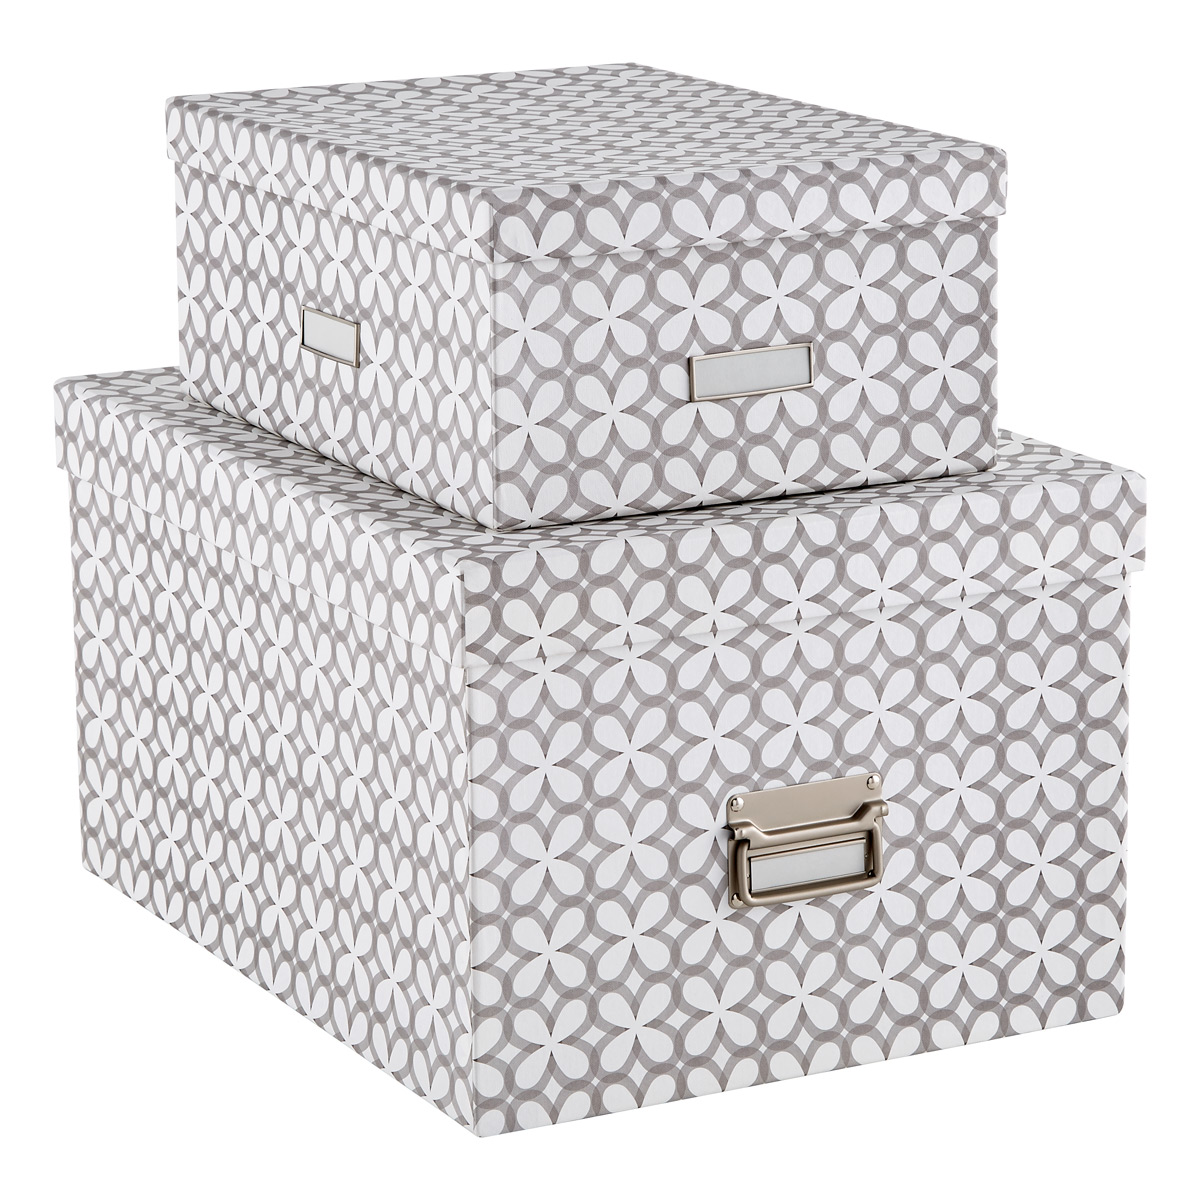 Our Bigso Synchronicity Storage Boxes